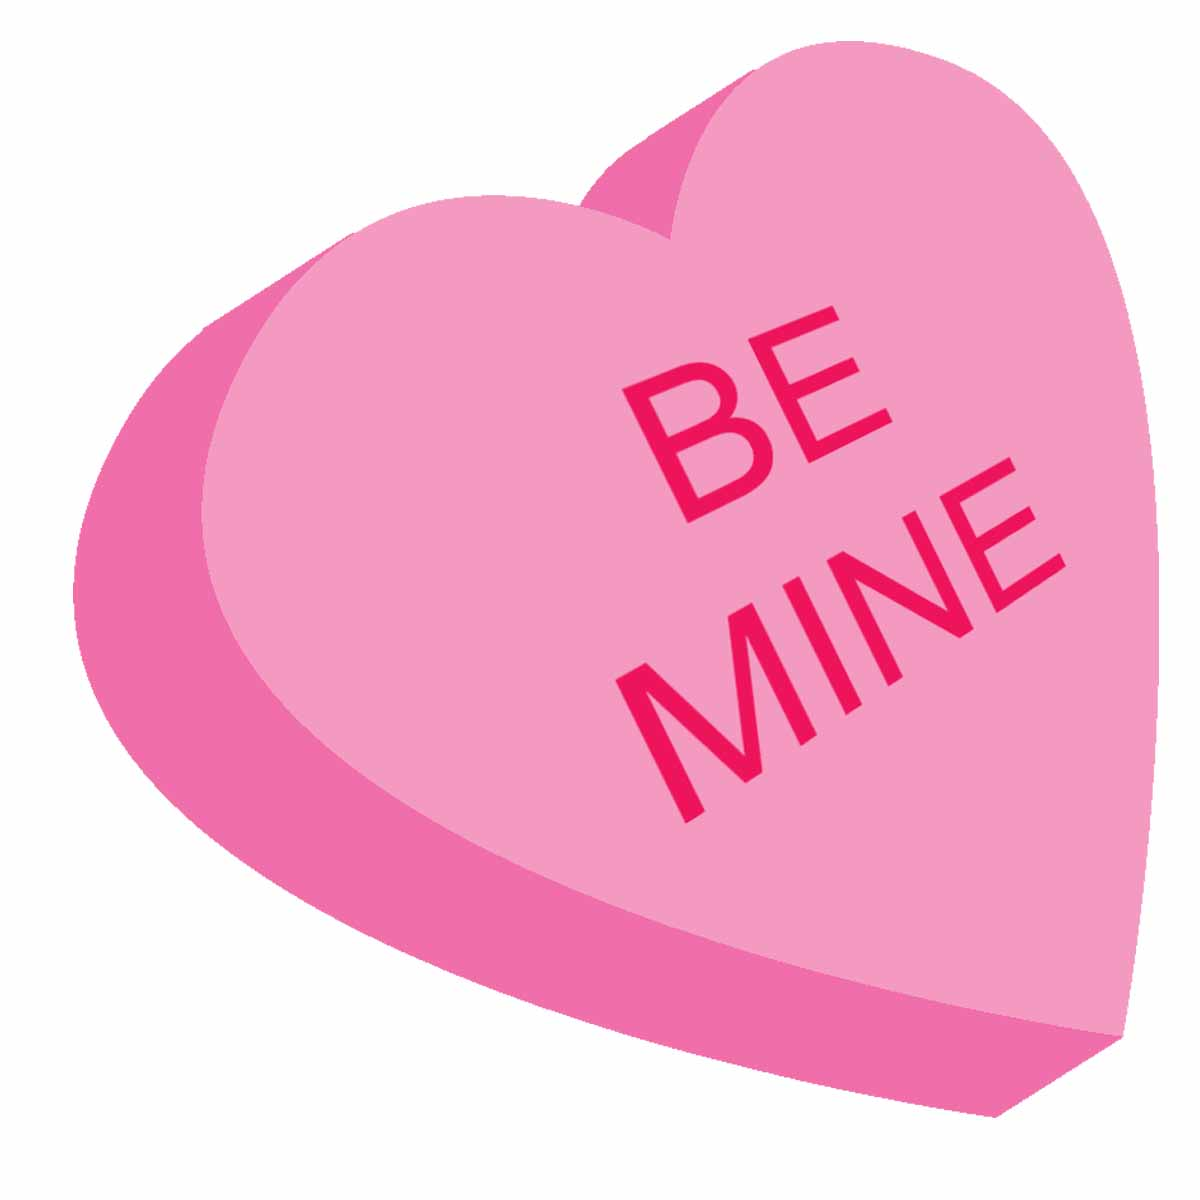 Romantic Valentine Candy Hearts Clipart -Romantic Valentine Candy Hearts Clipart Funny Pictures Shake The-3